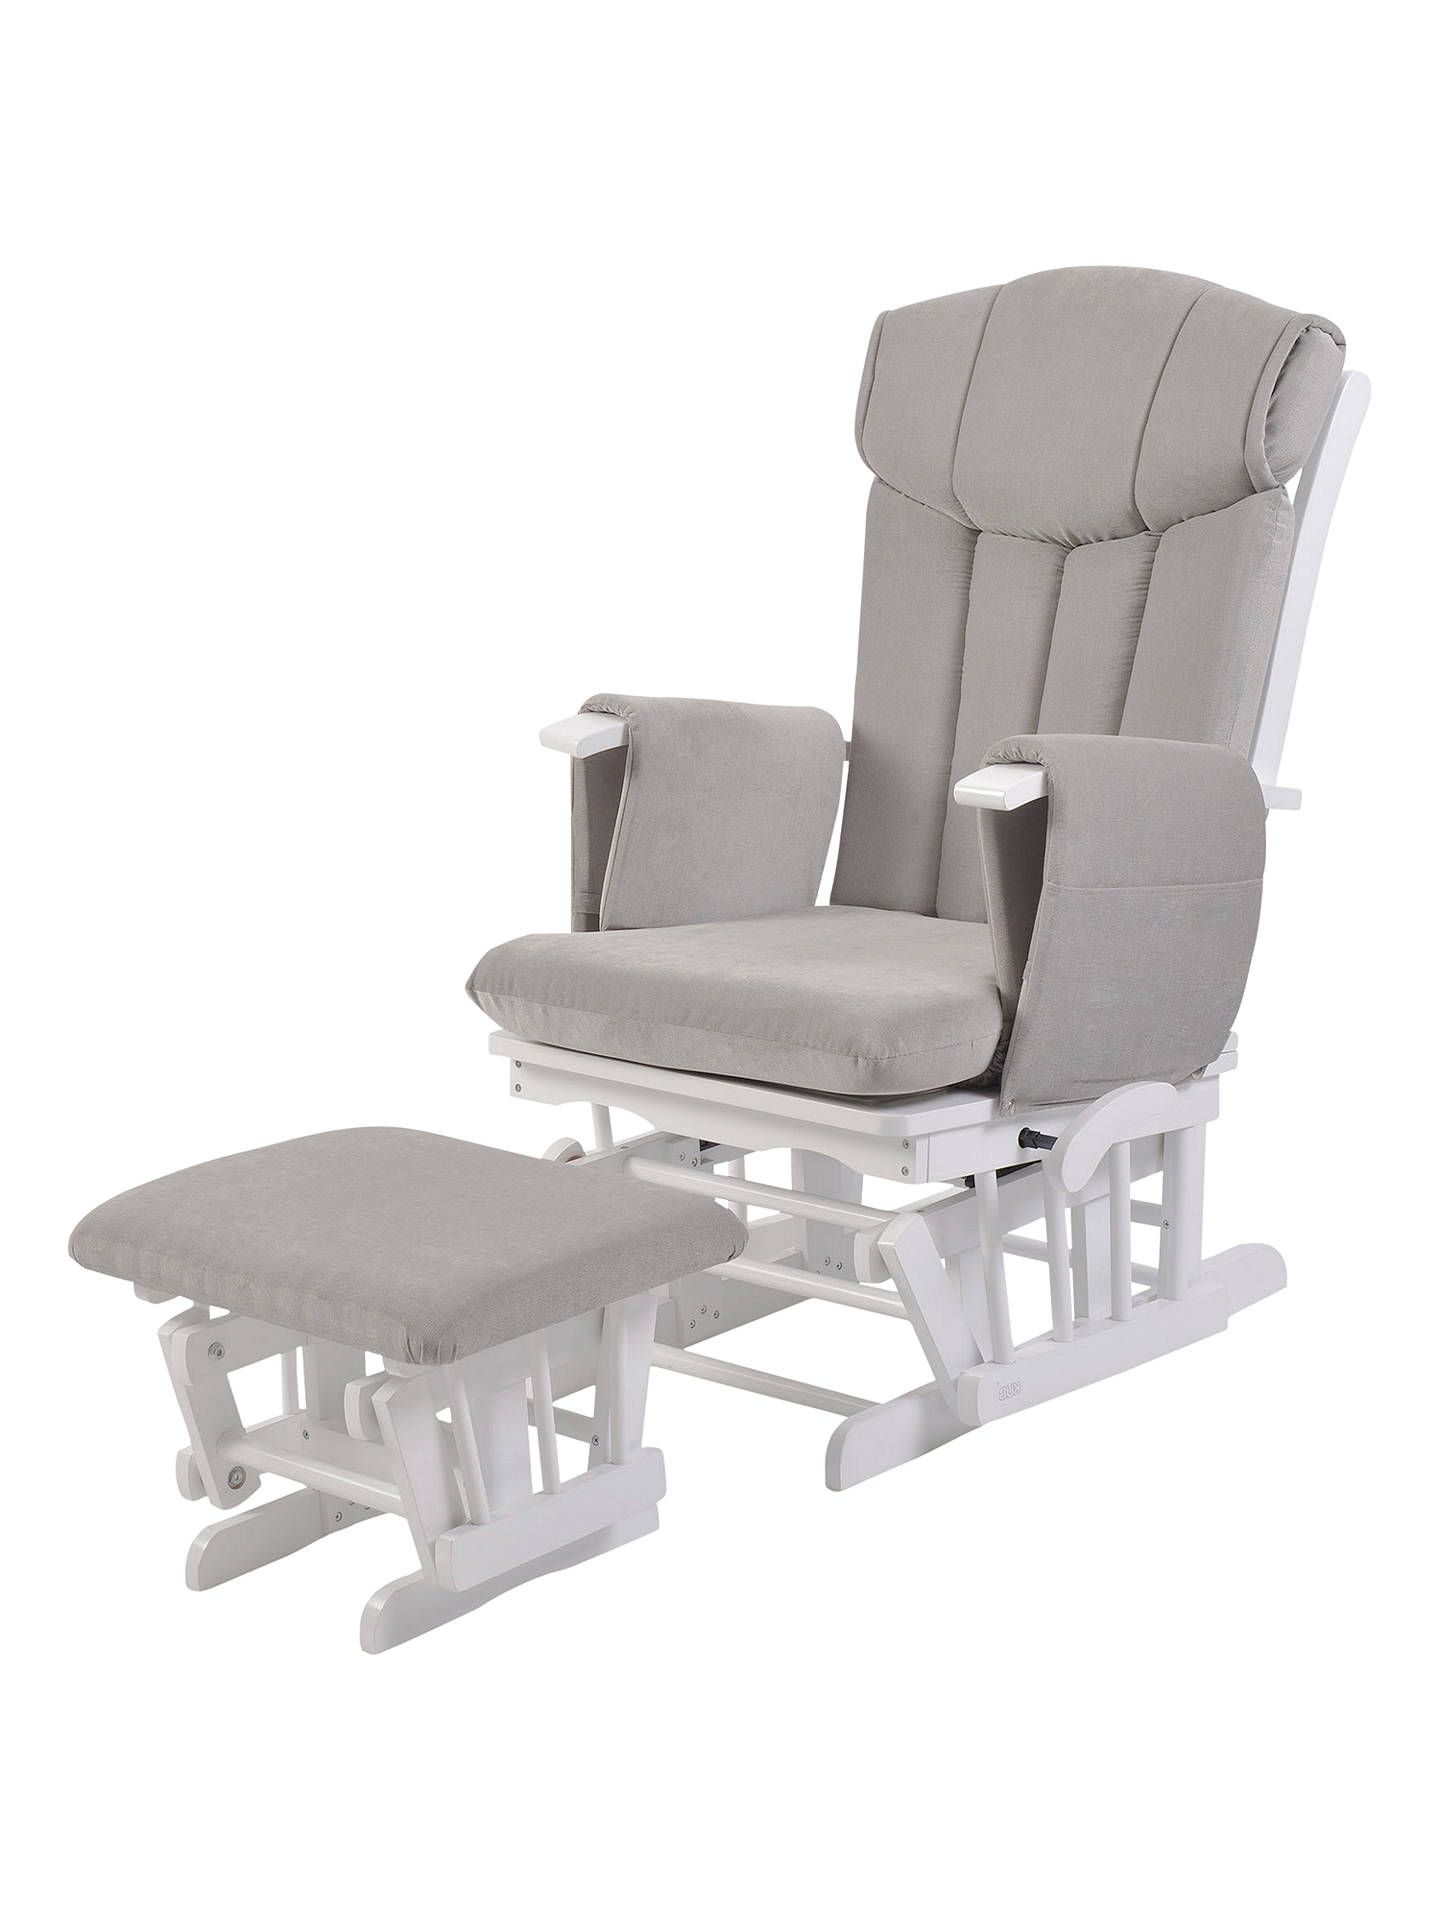 Buy Kub Chatsworth Glider Nursing Chair and Foot Stool, Grey Online at johnlewis.com